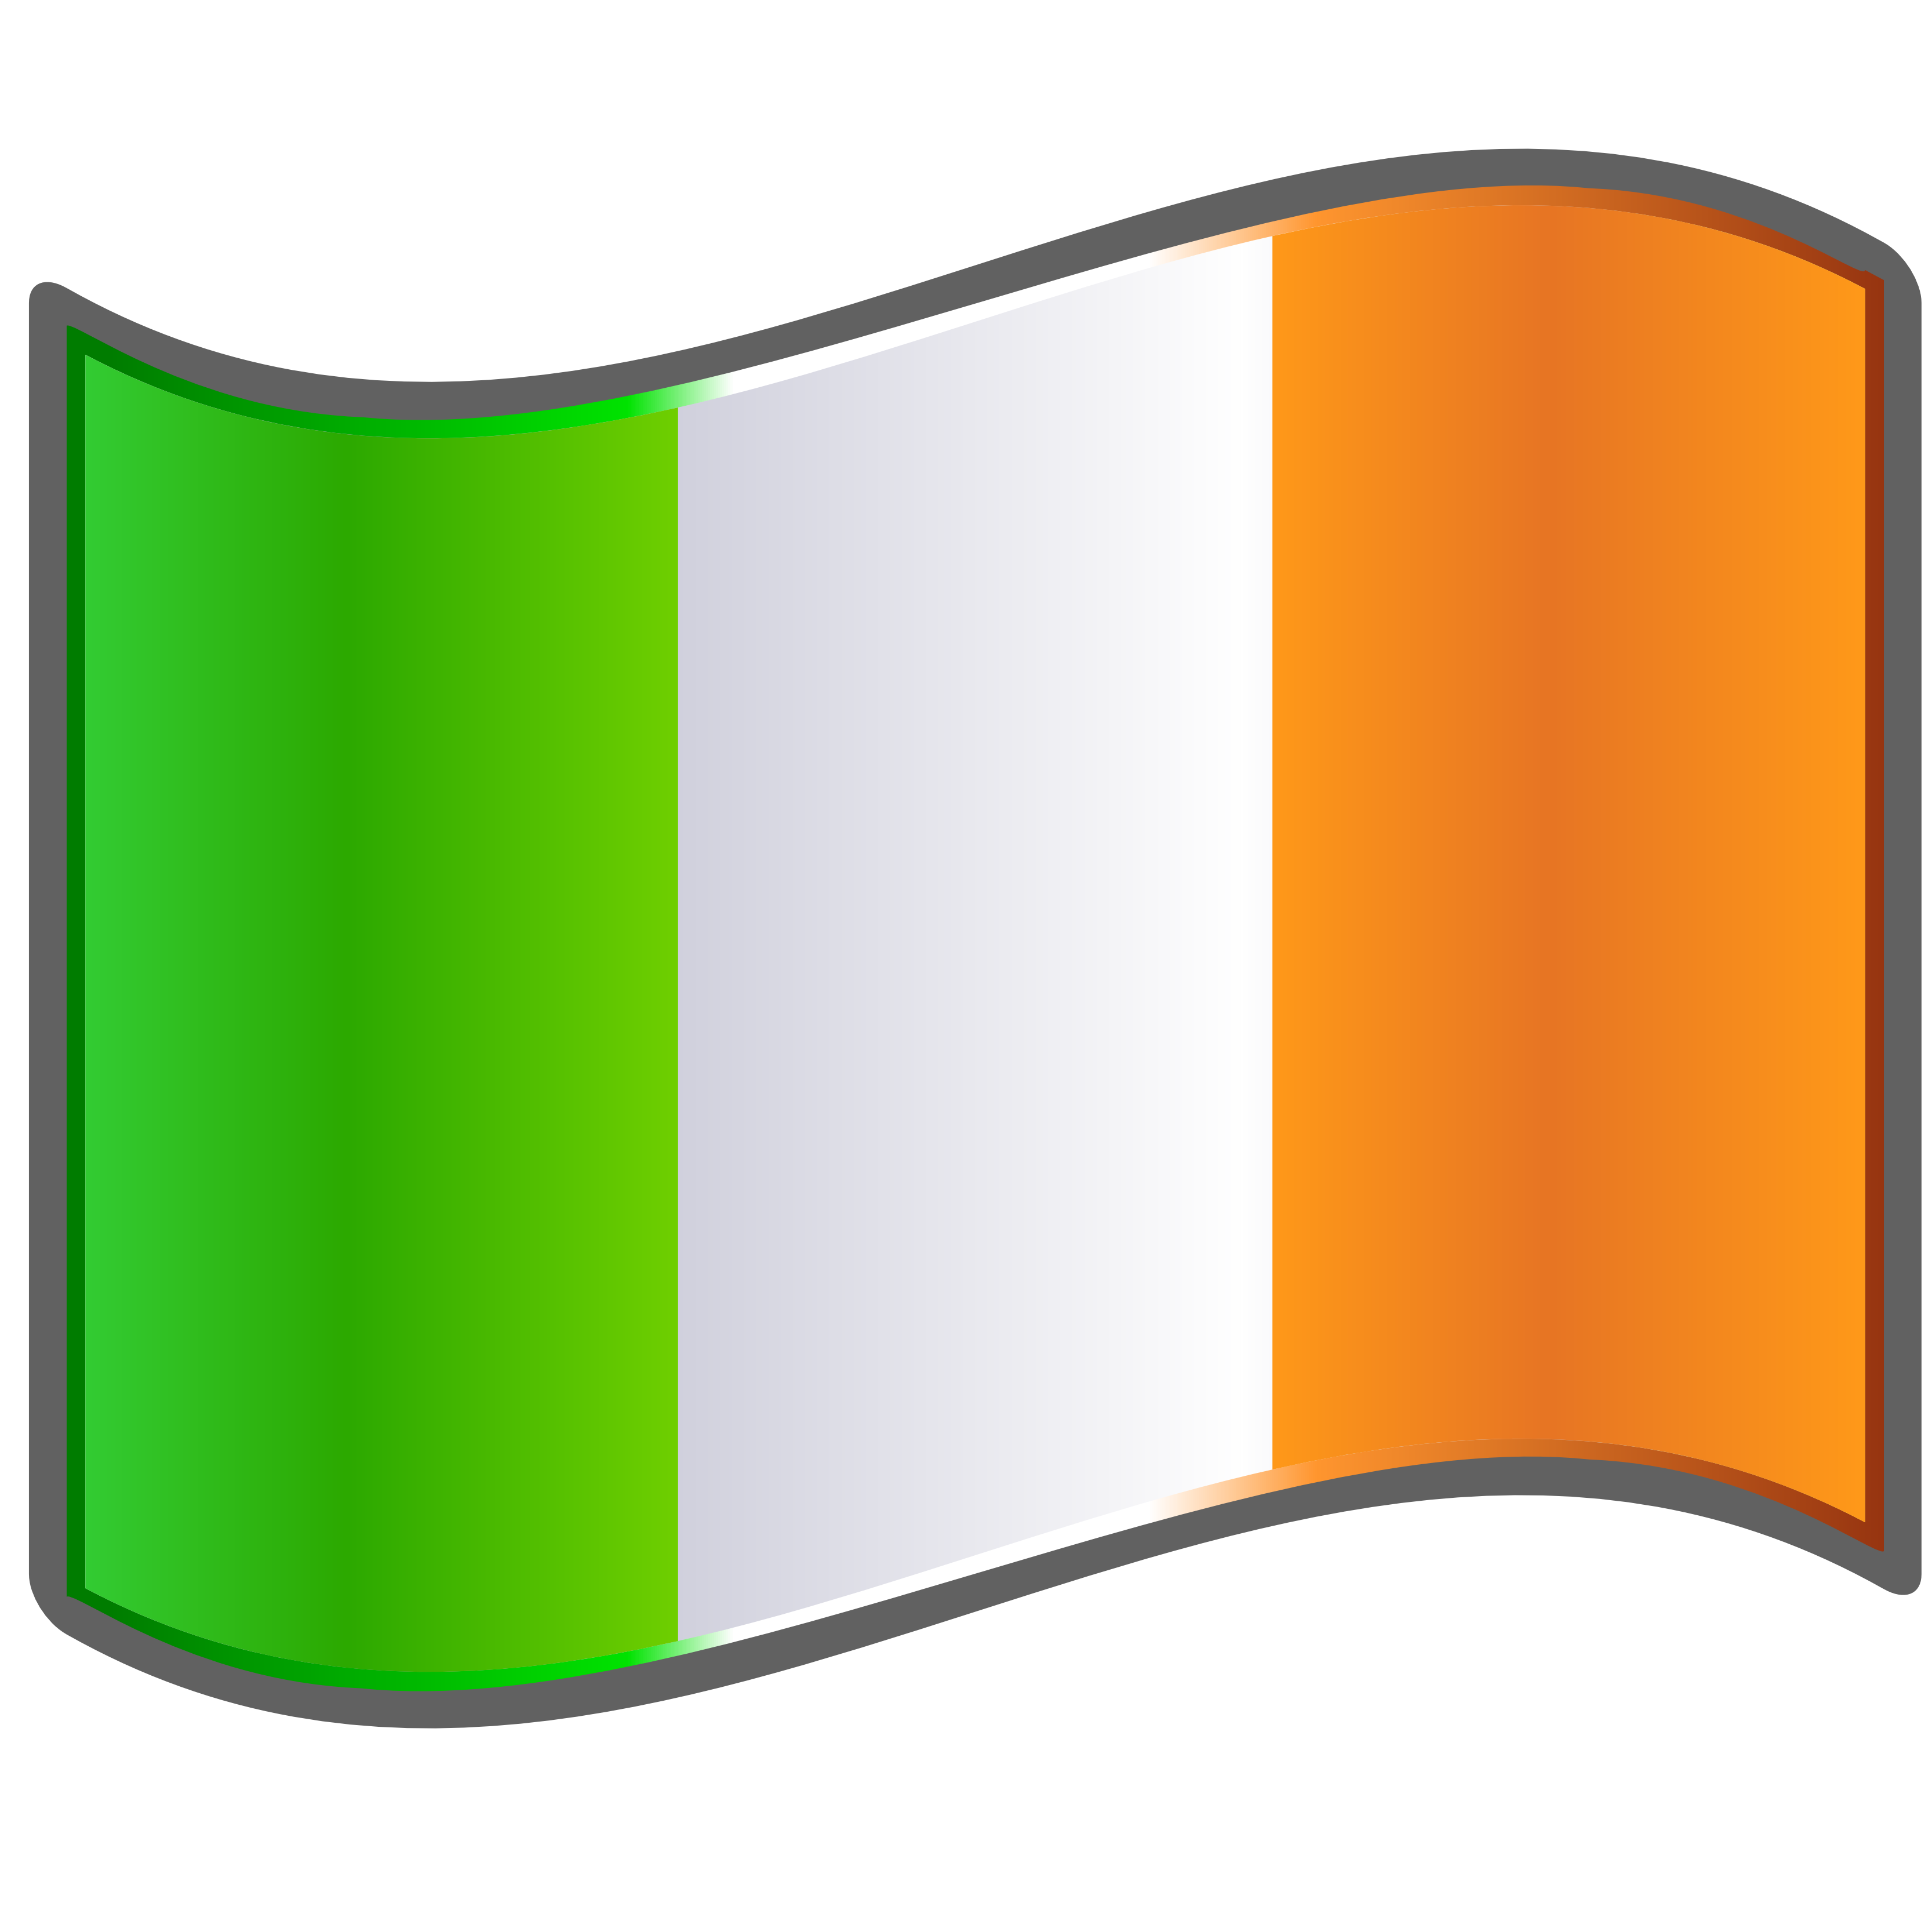 Irish Flag Clip Art   Clipart Best